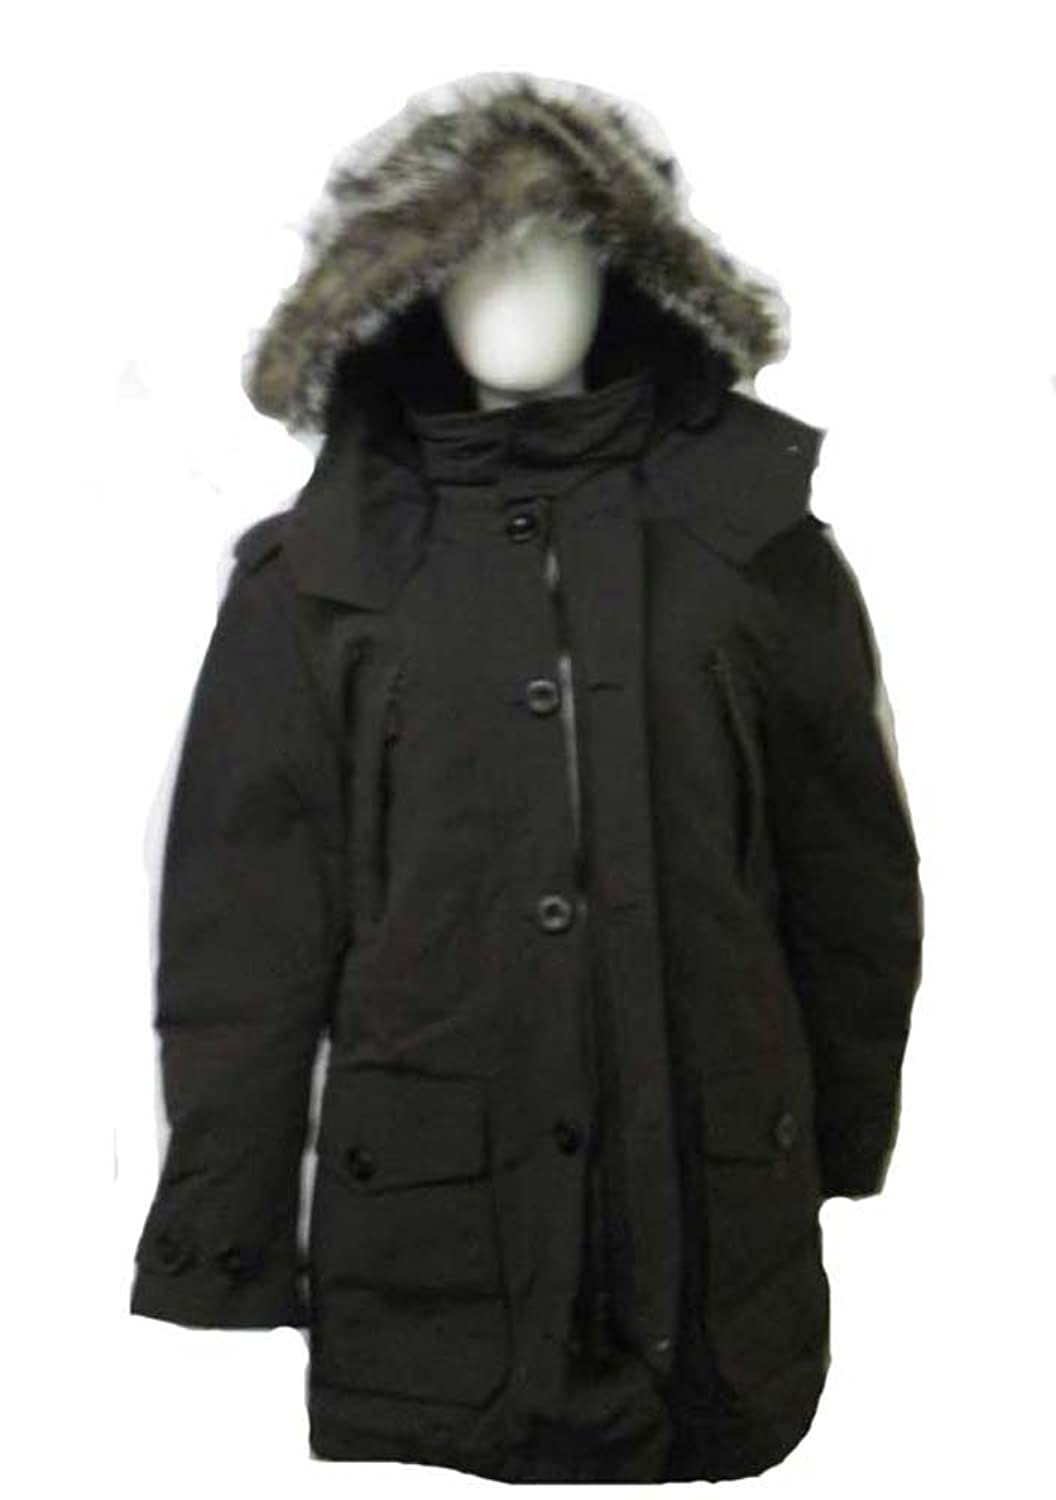 Coach Mens Bowery Quilted Racer Jacket Coat 83741 Black S M L XL ... : coach quilted coat - Adamdwight.com